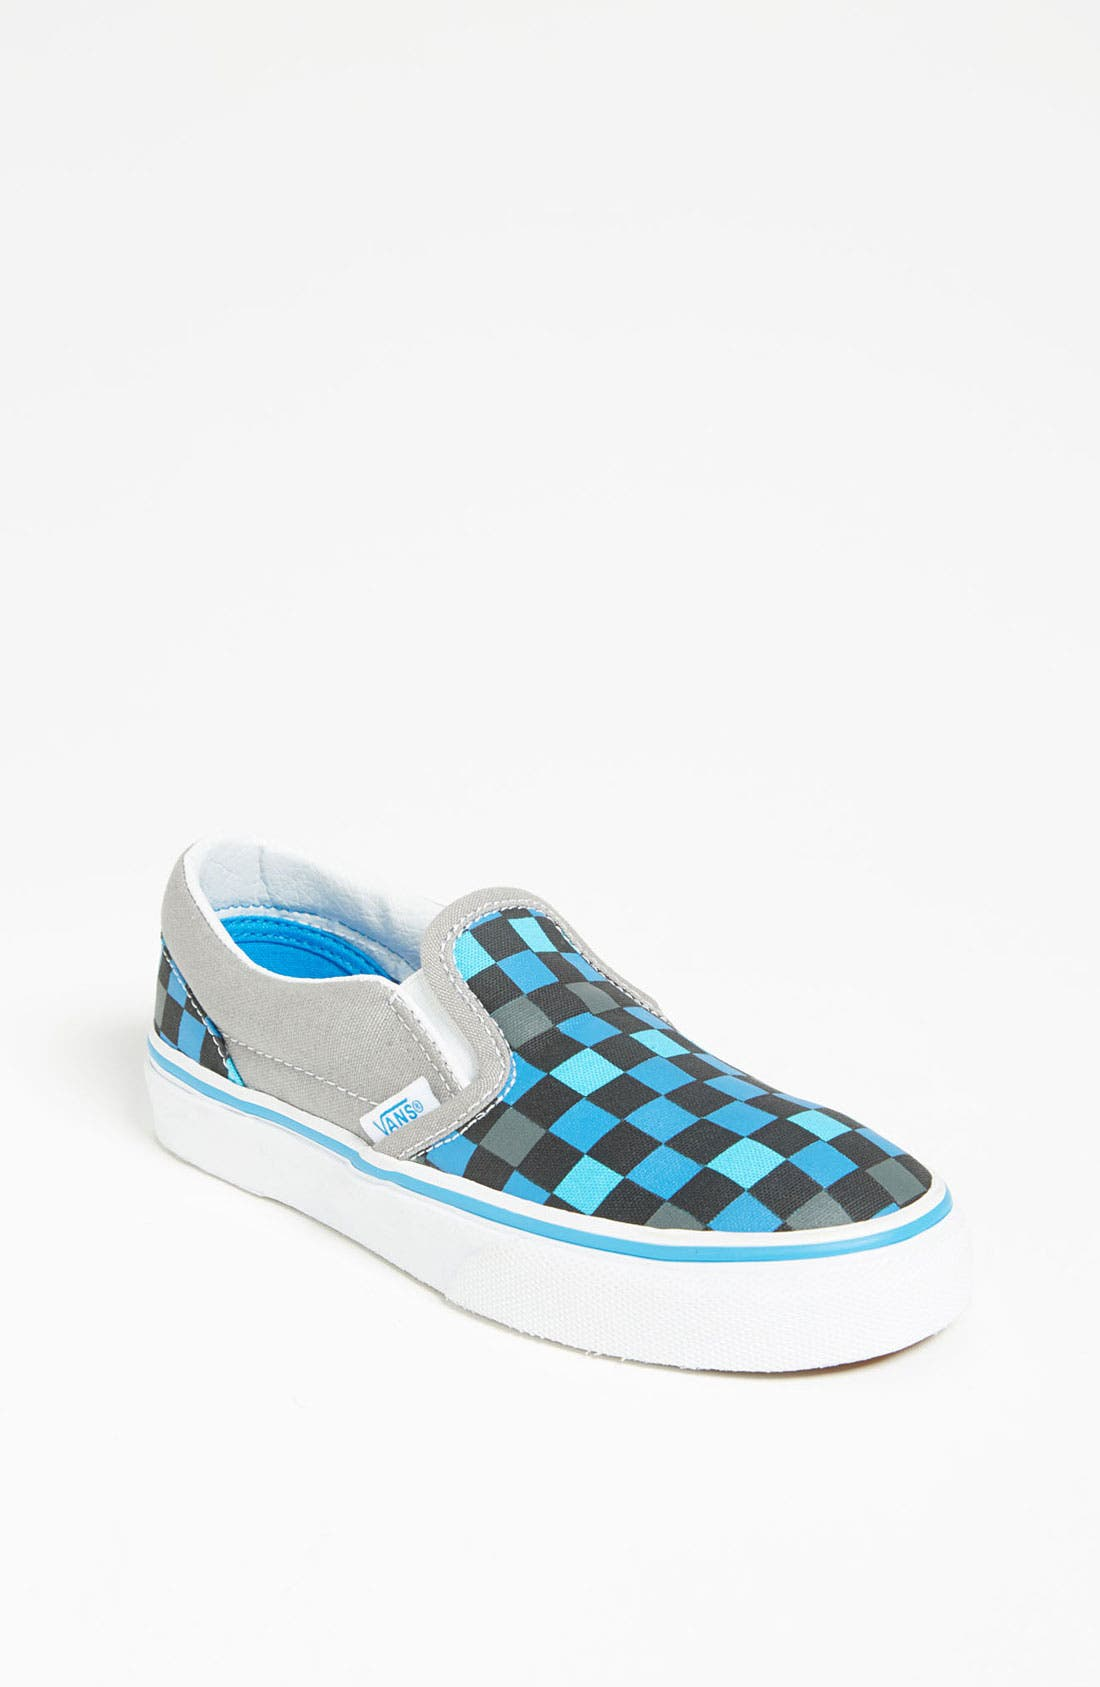 Main Image - Vans 'Multi Check' Slip-On (Walker, Toddler, Little Kid & Big Kid)